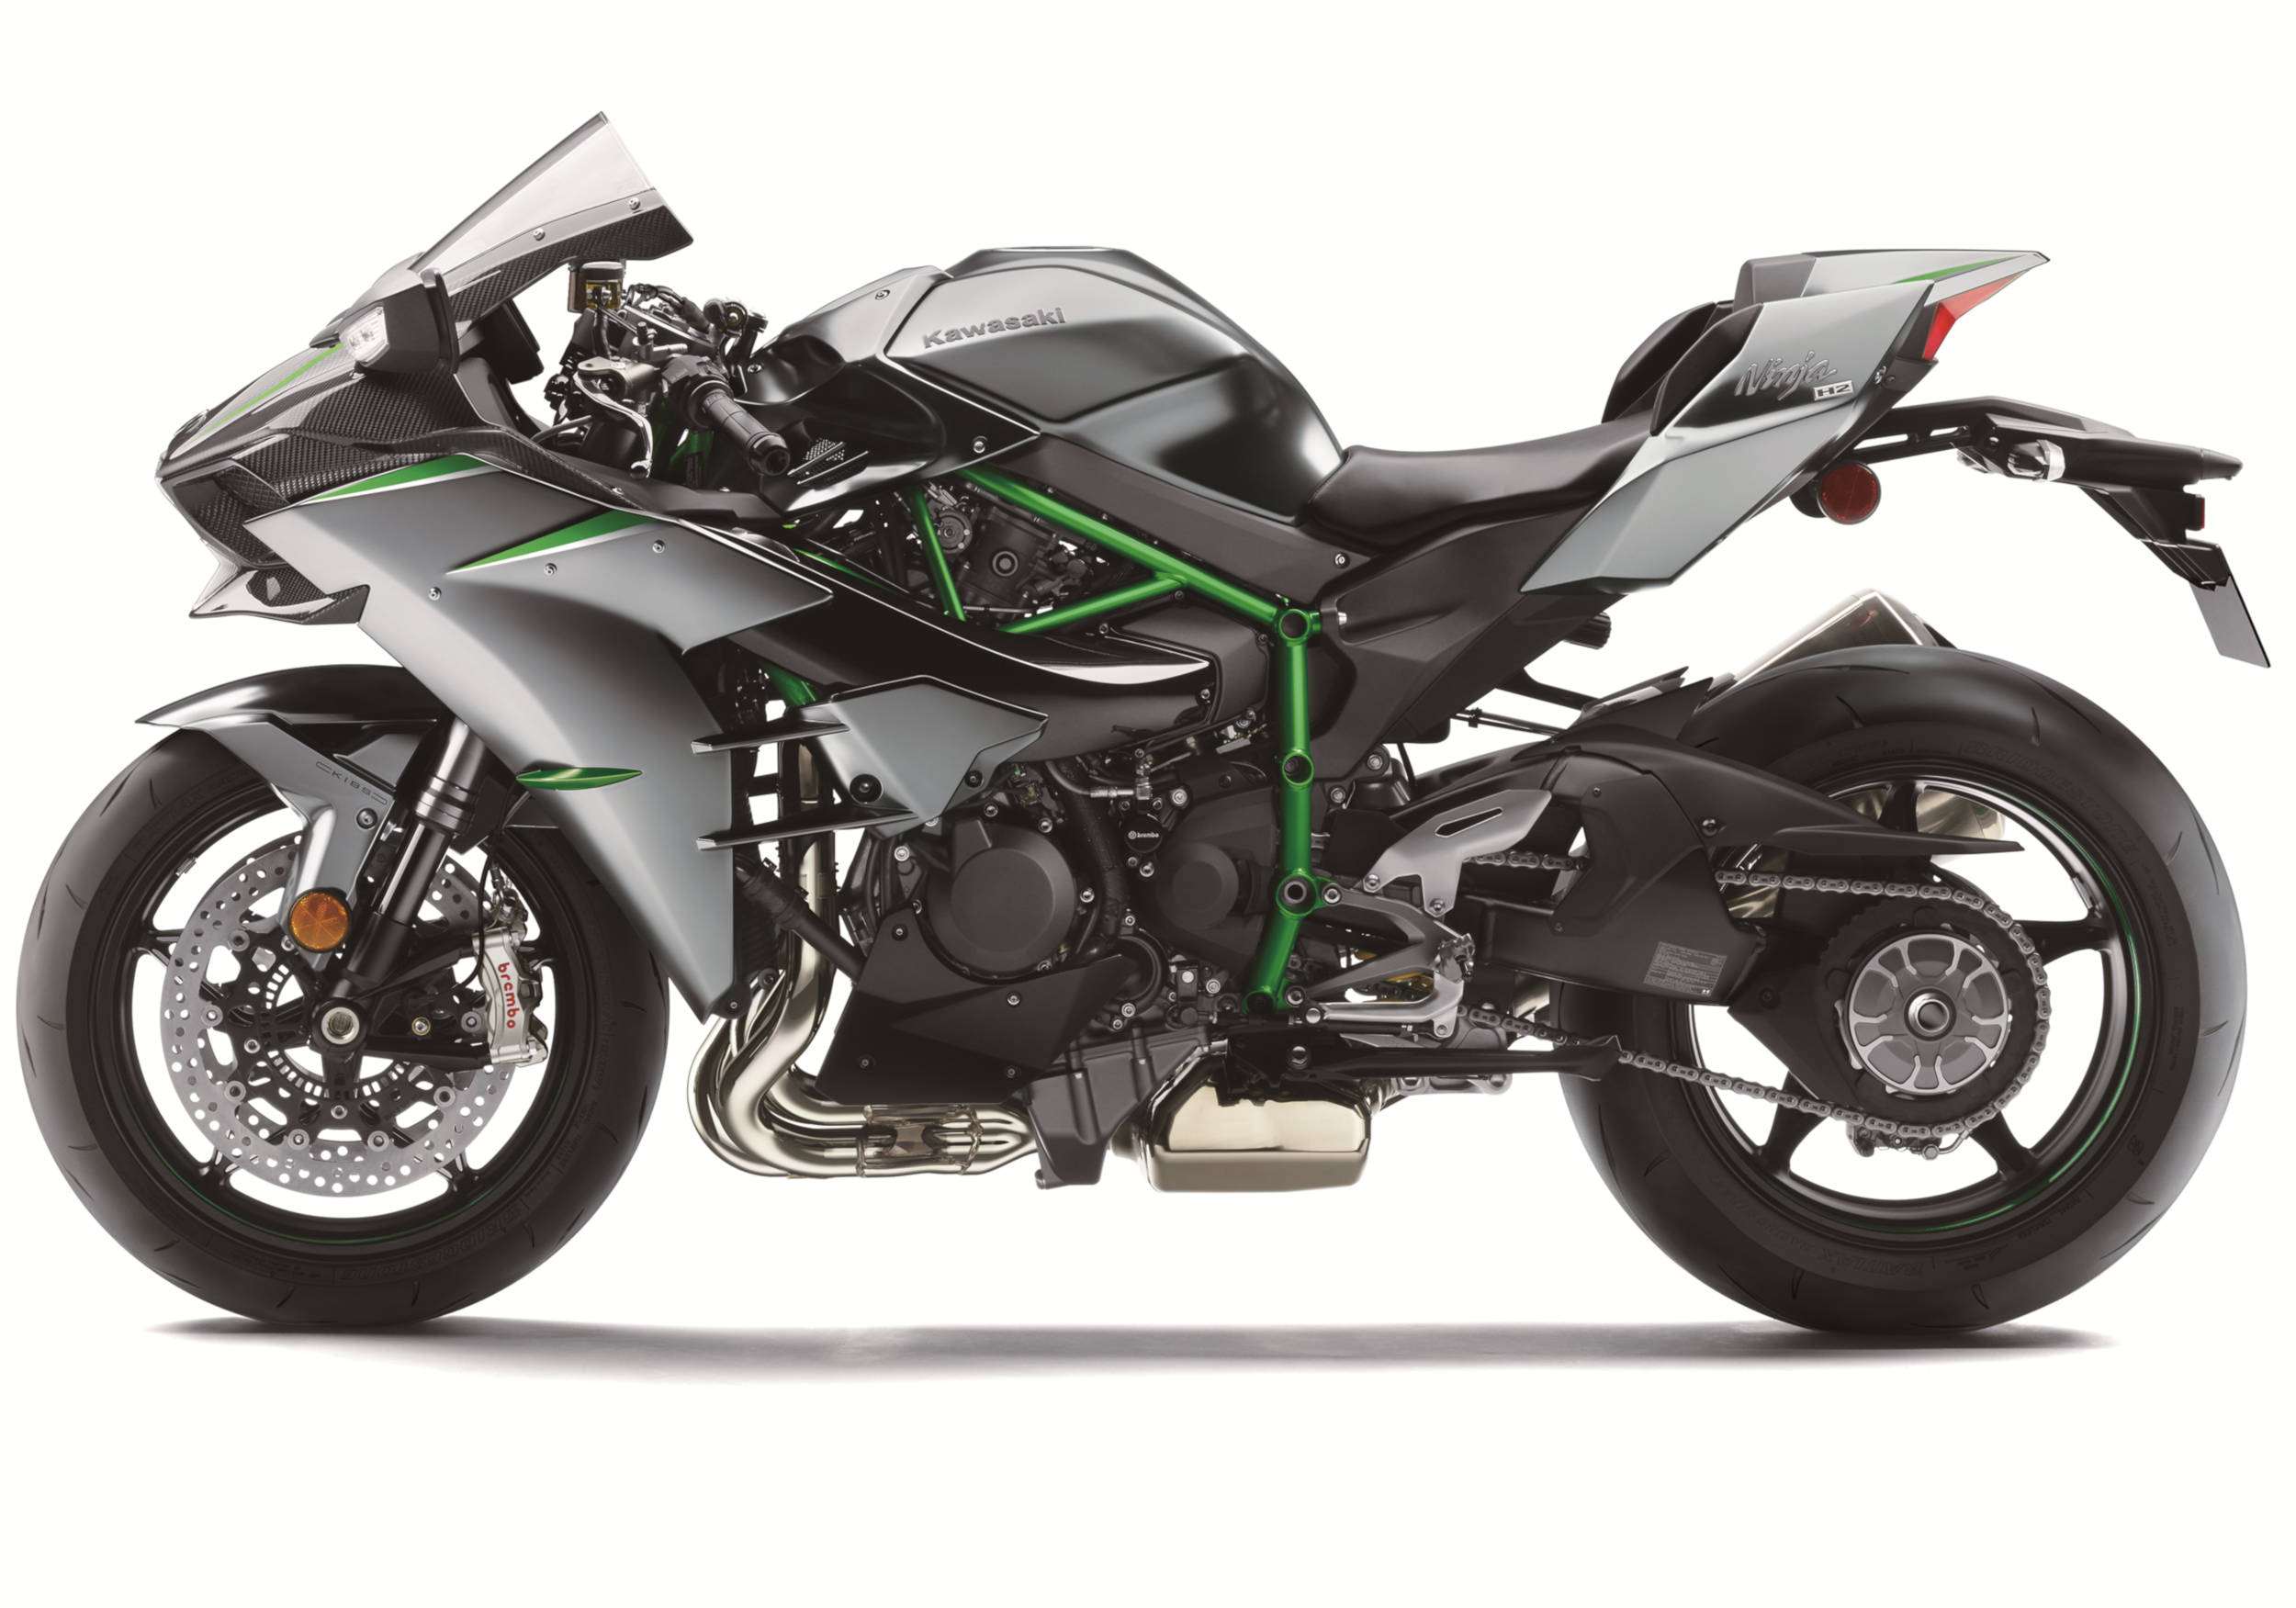 Kawasaki Announces Changes To 2019 Ninja H2 H2 Carbon And H2r